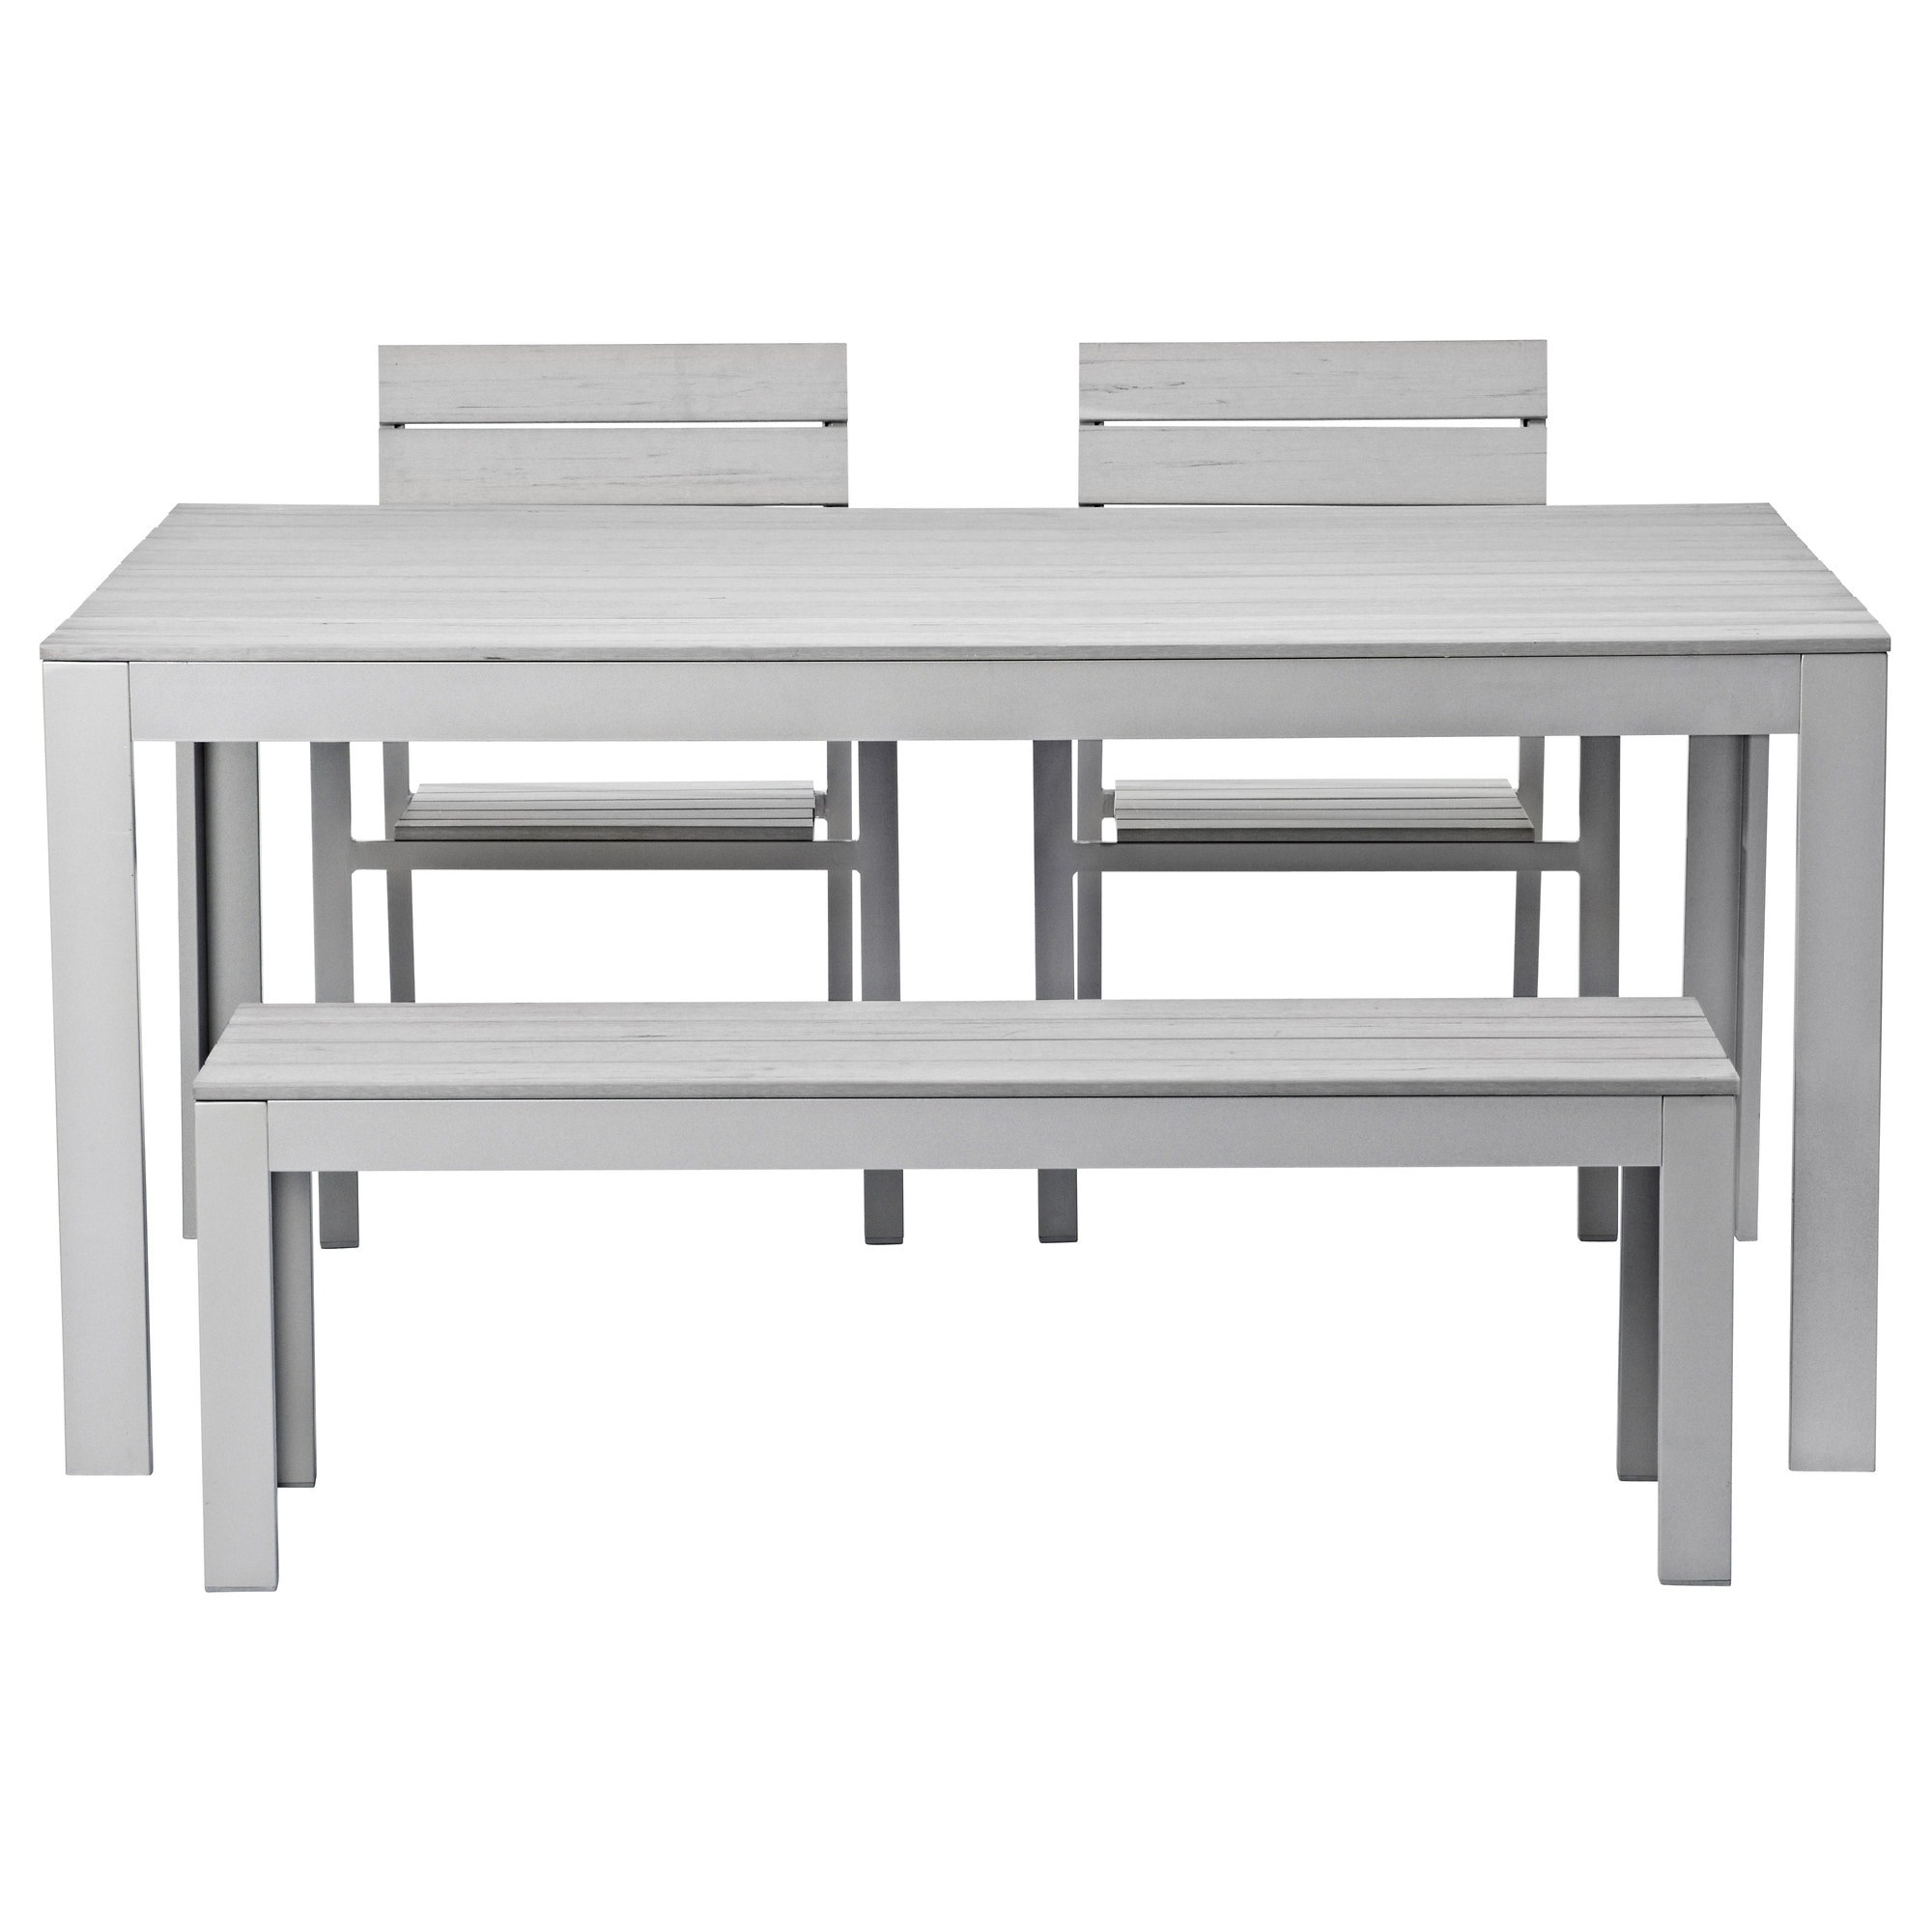 FALSTER Table, 2 Chairs And Bench, Outdoor   Gray   IKEA